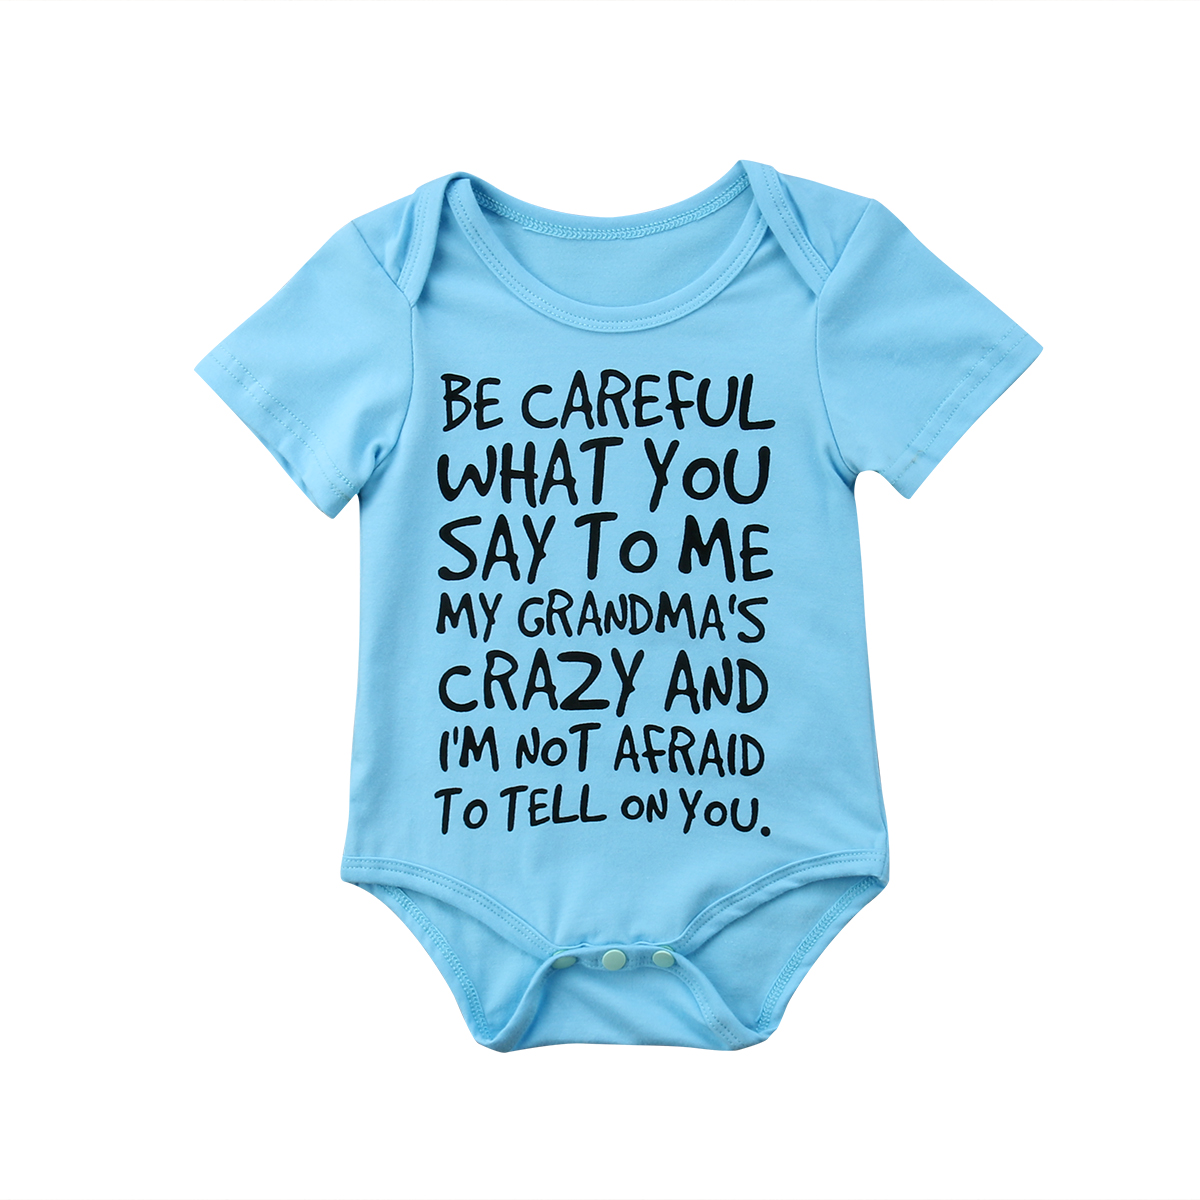 USA Baby Boy Girl Toddler Bodysuit Romper Jumpsuit Bodysuit Clothes Outfit 0-24M